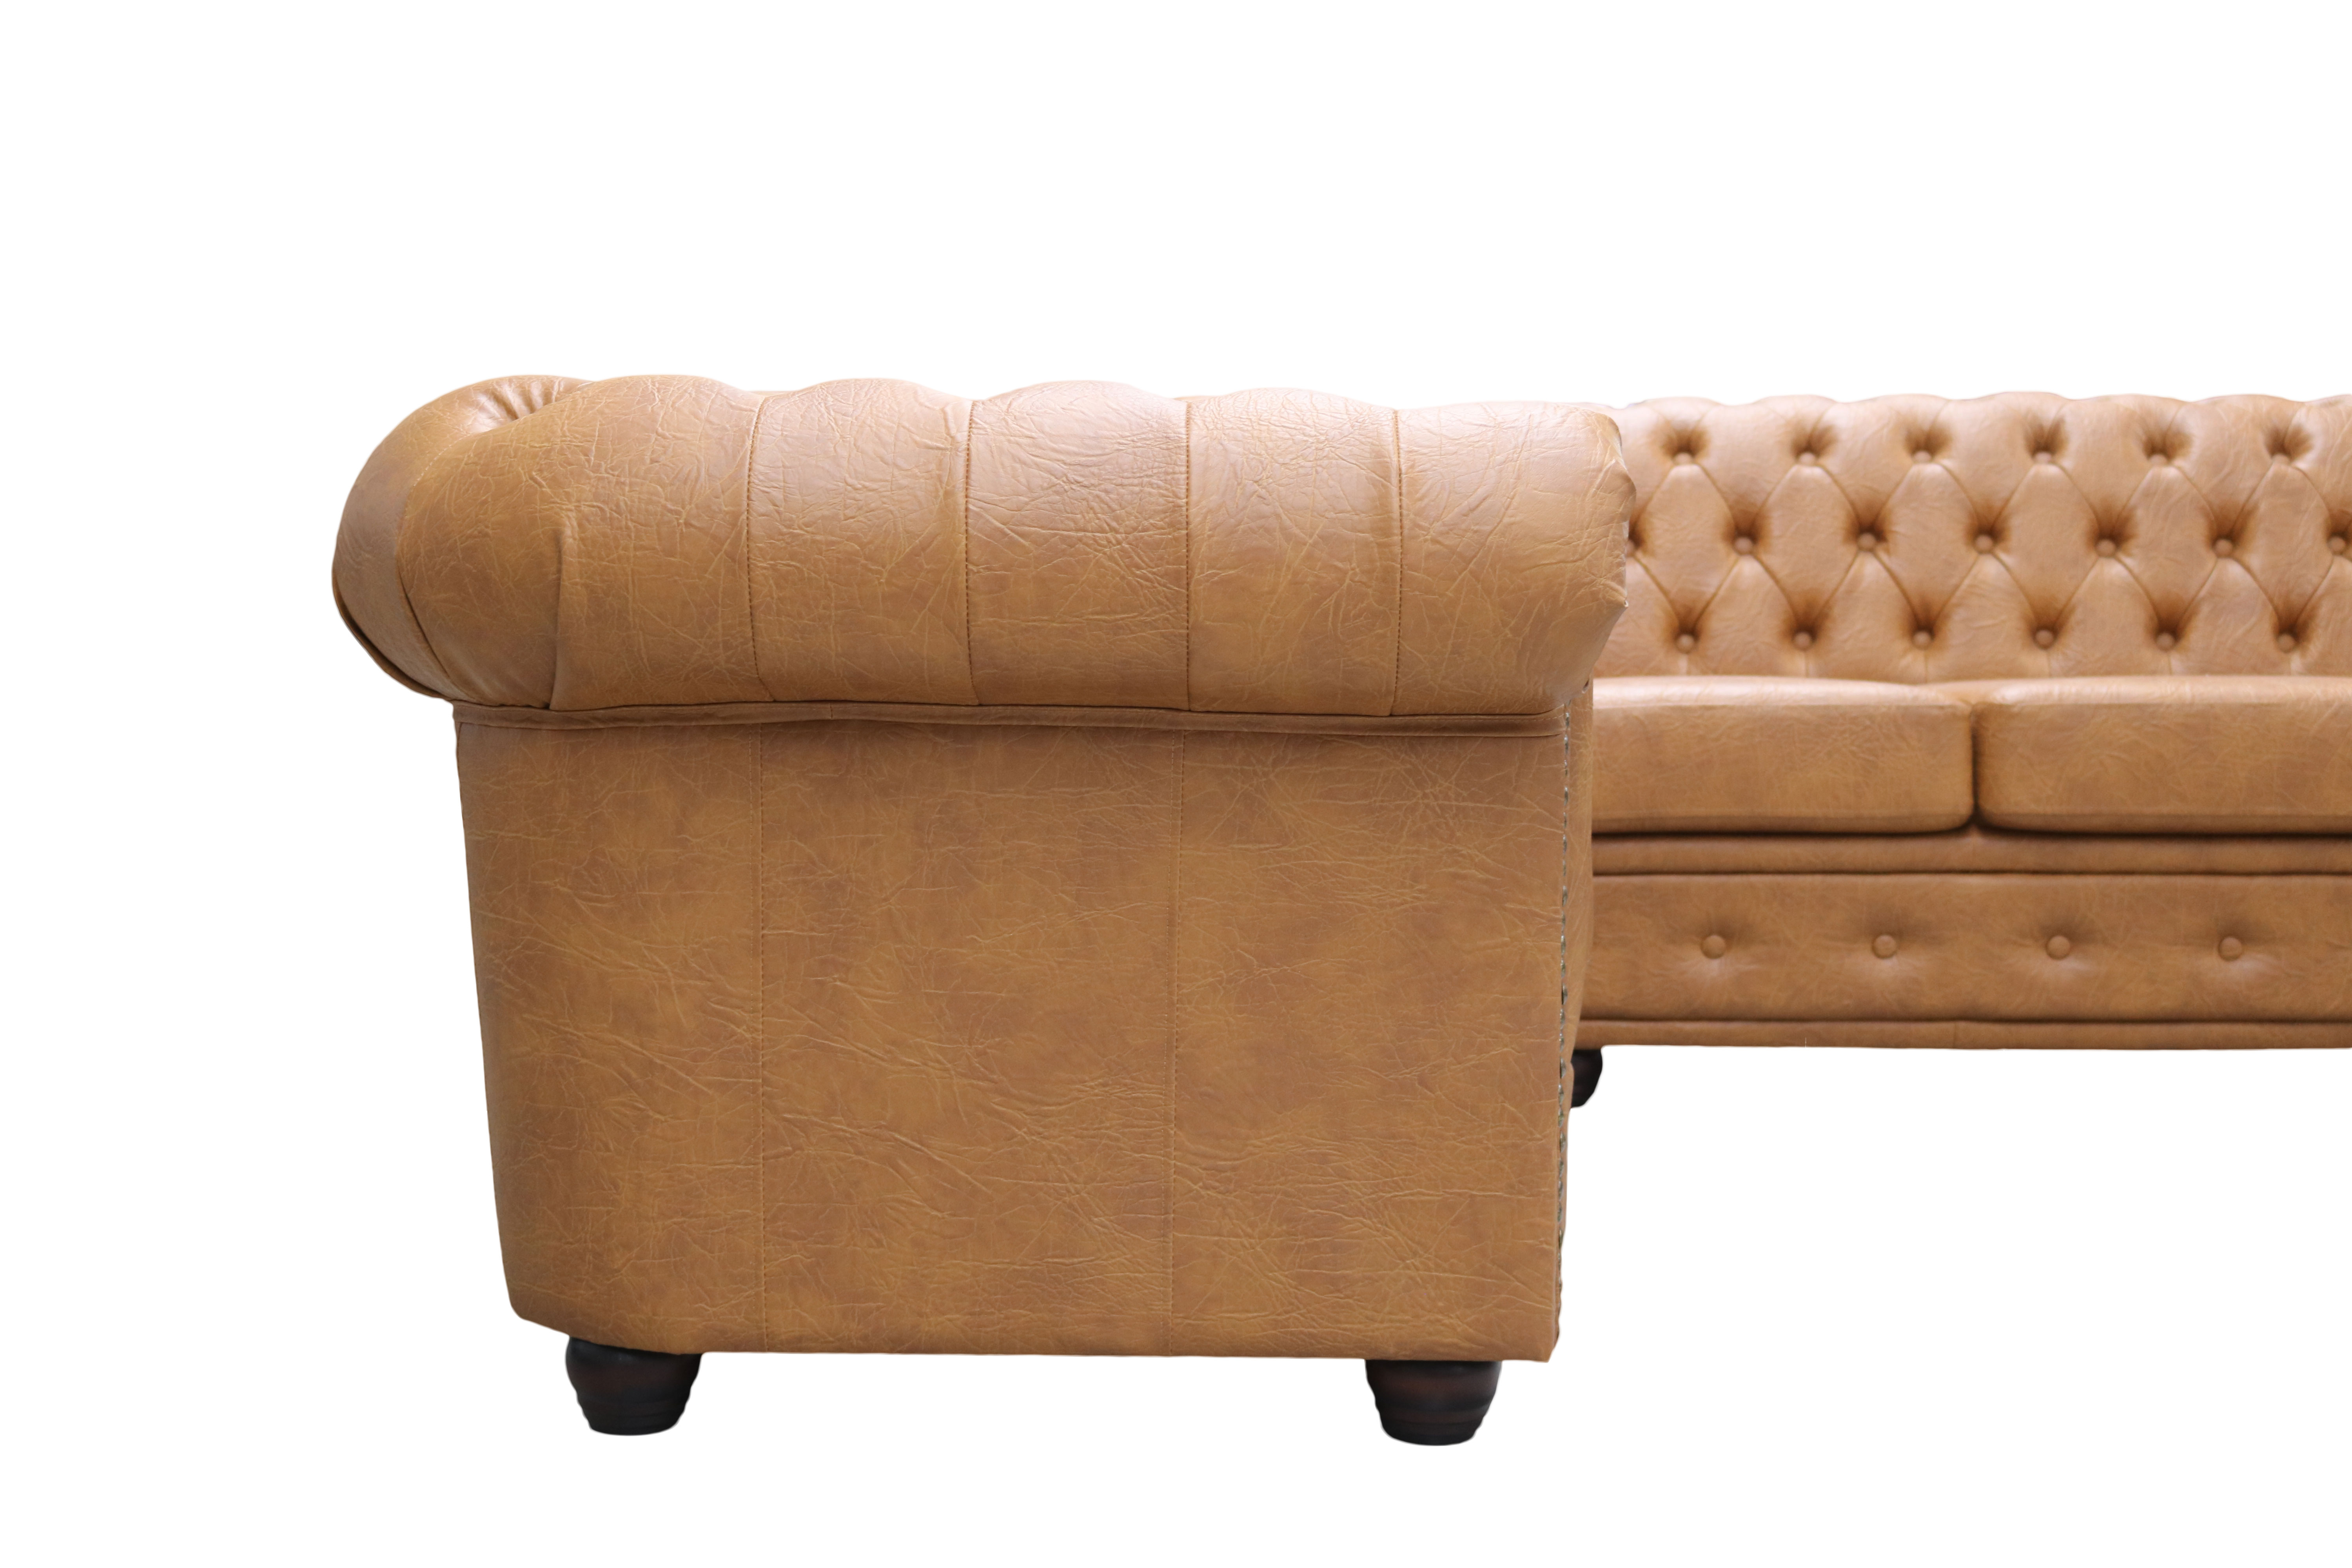 Chesterfield Sofa Und Hocker Ecksofa Chesterfield Bettfunktion 3sitzer Hocker Cognac L